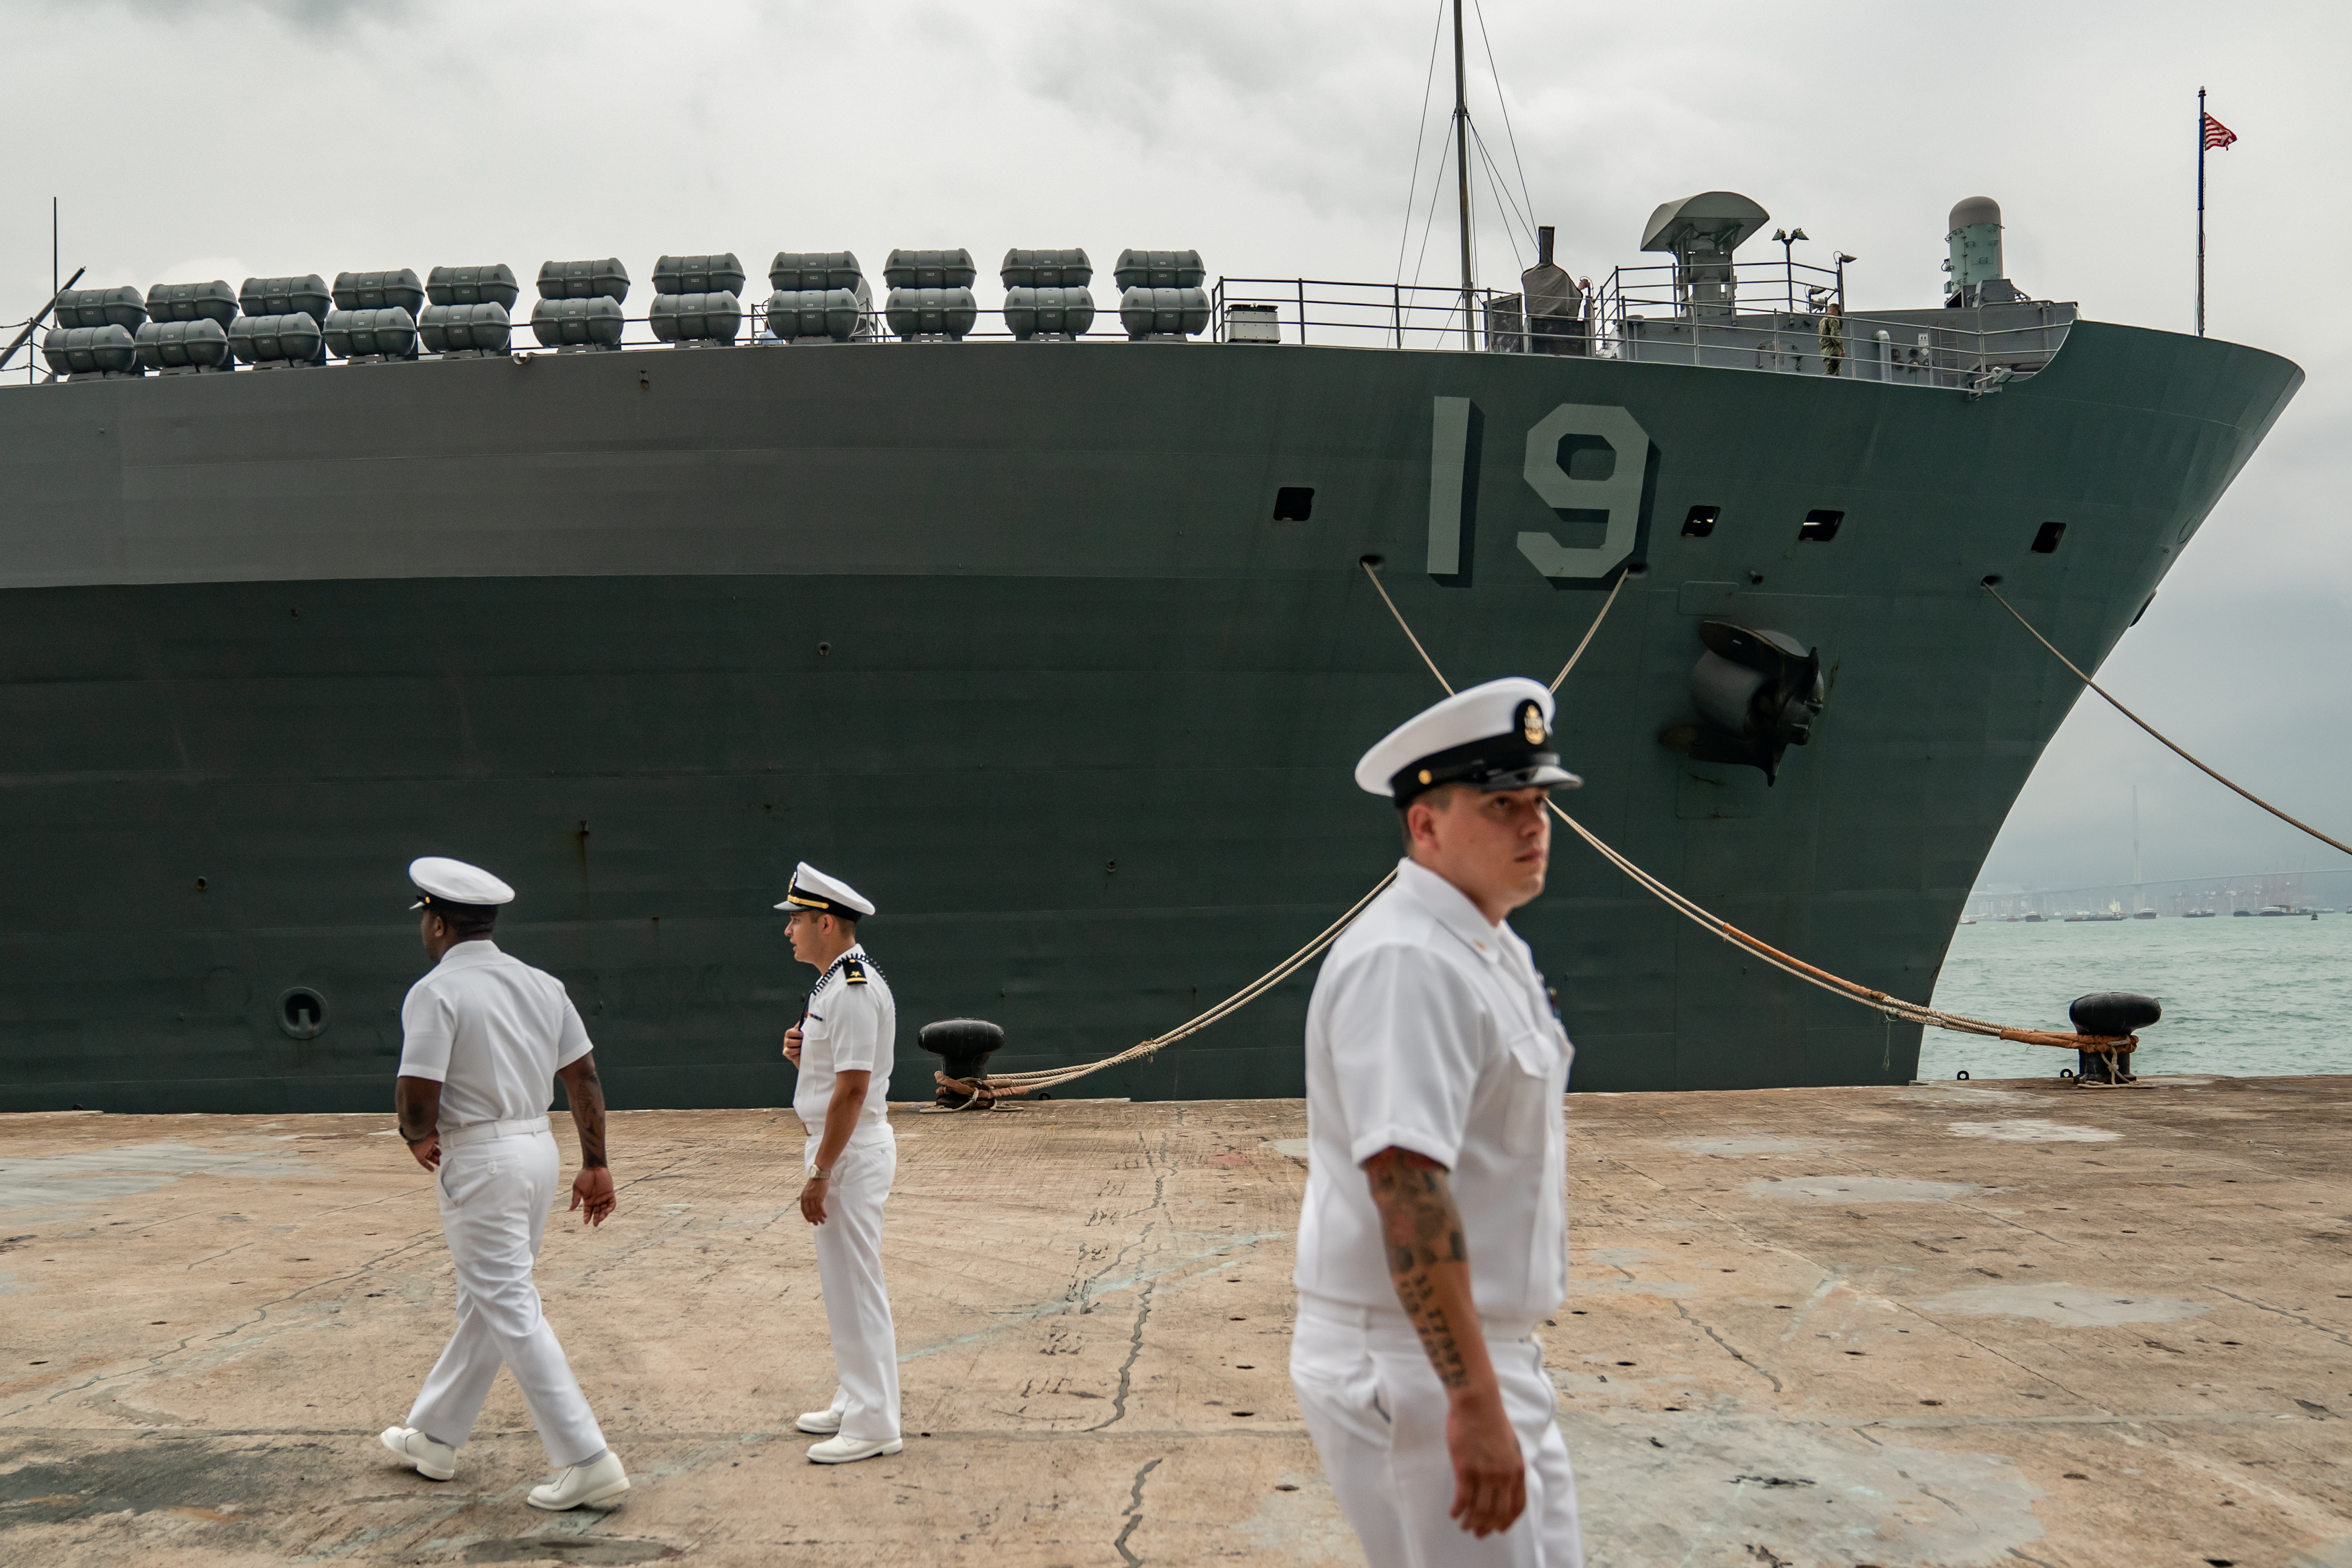 Navy crew members walks in front of the USS Blue Ridge at a wharf during a port call on April 20, 2019 in Hong Kong, China. (Anthony Kwan/Getty Images)